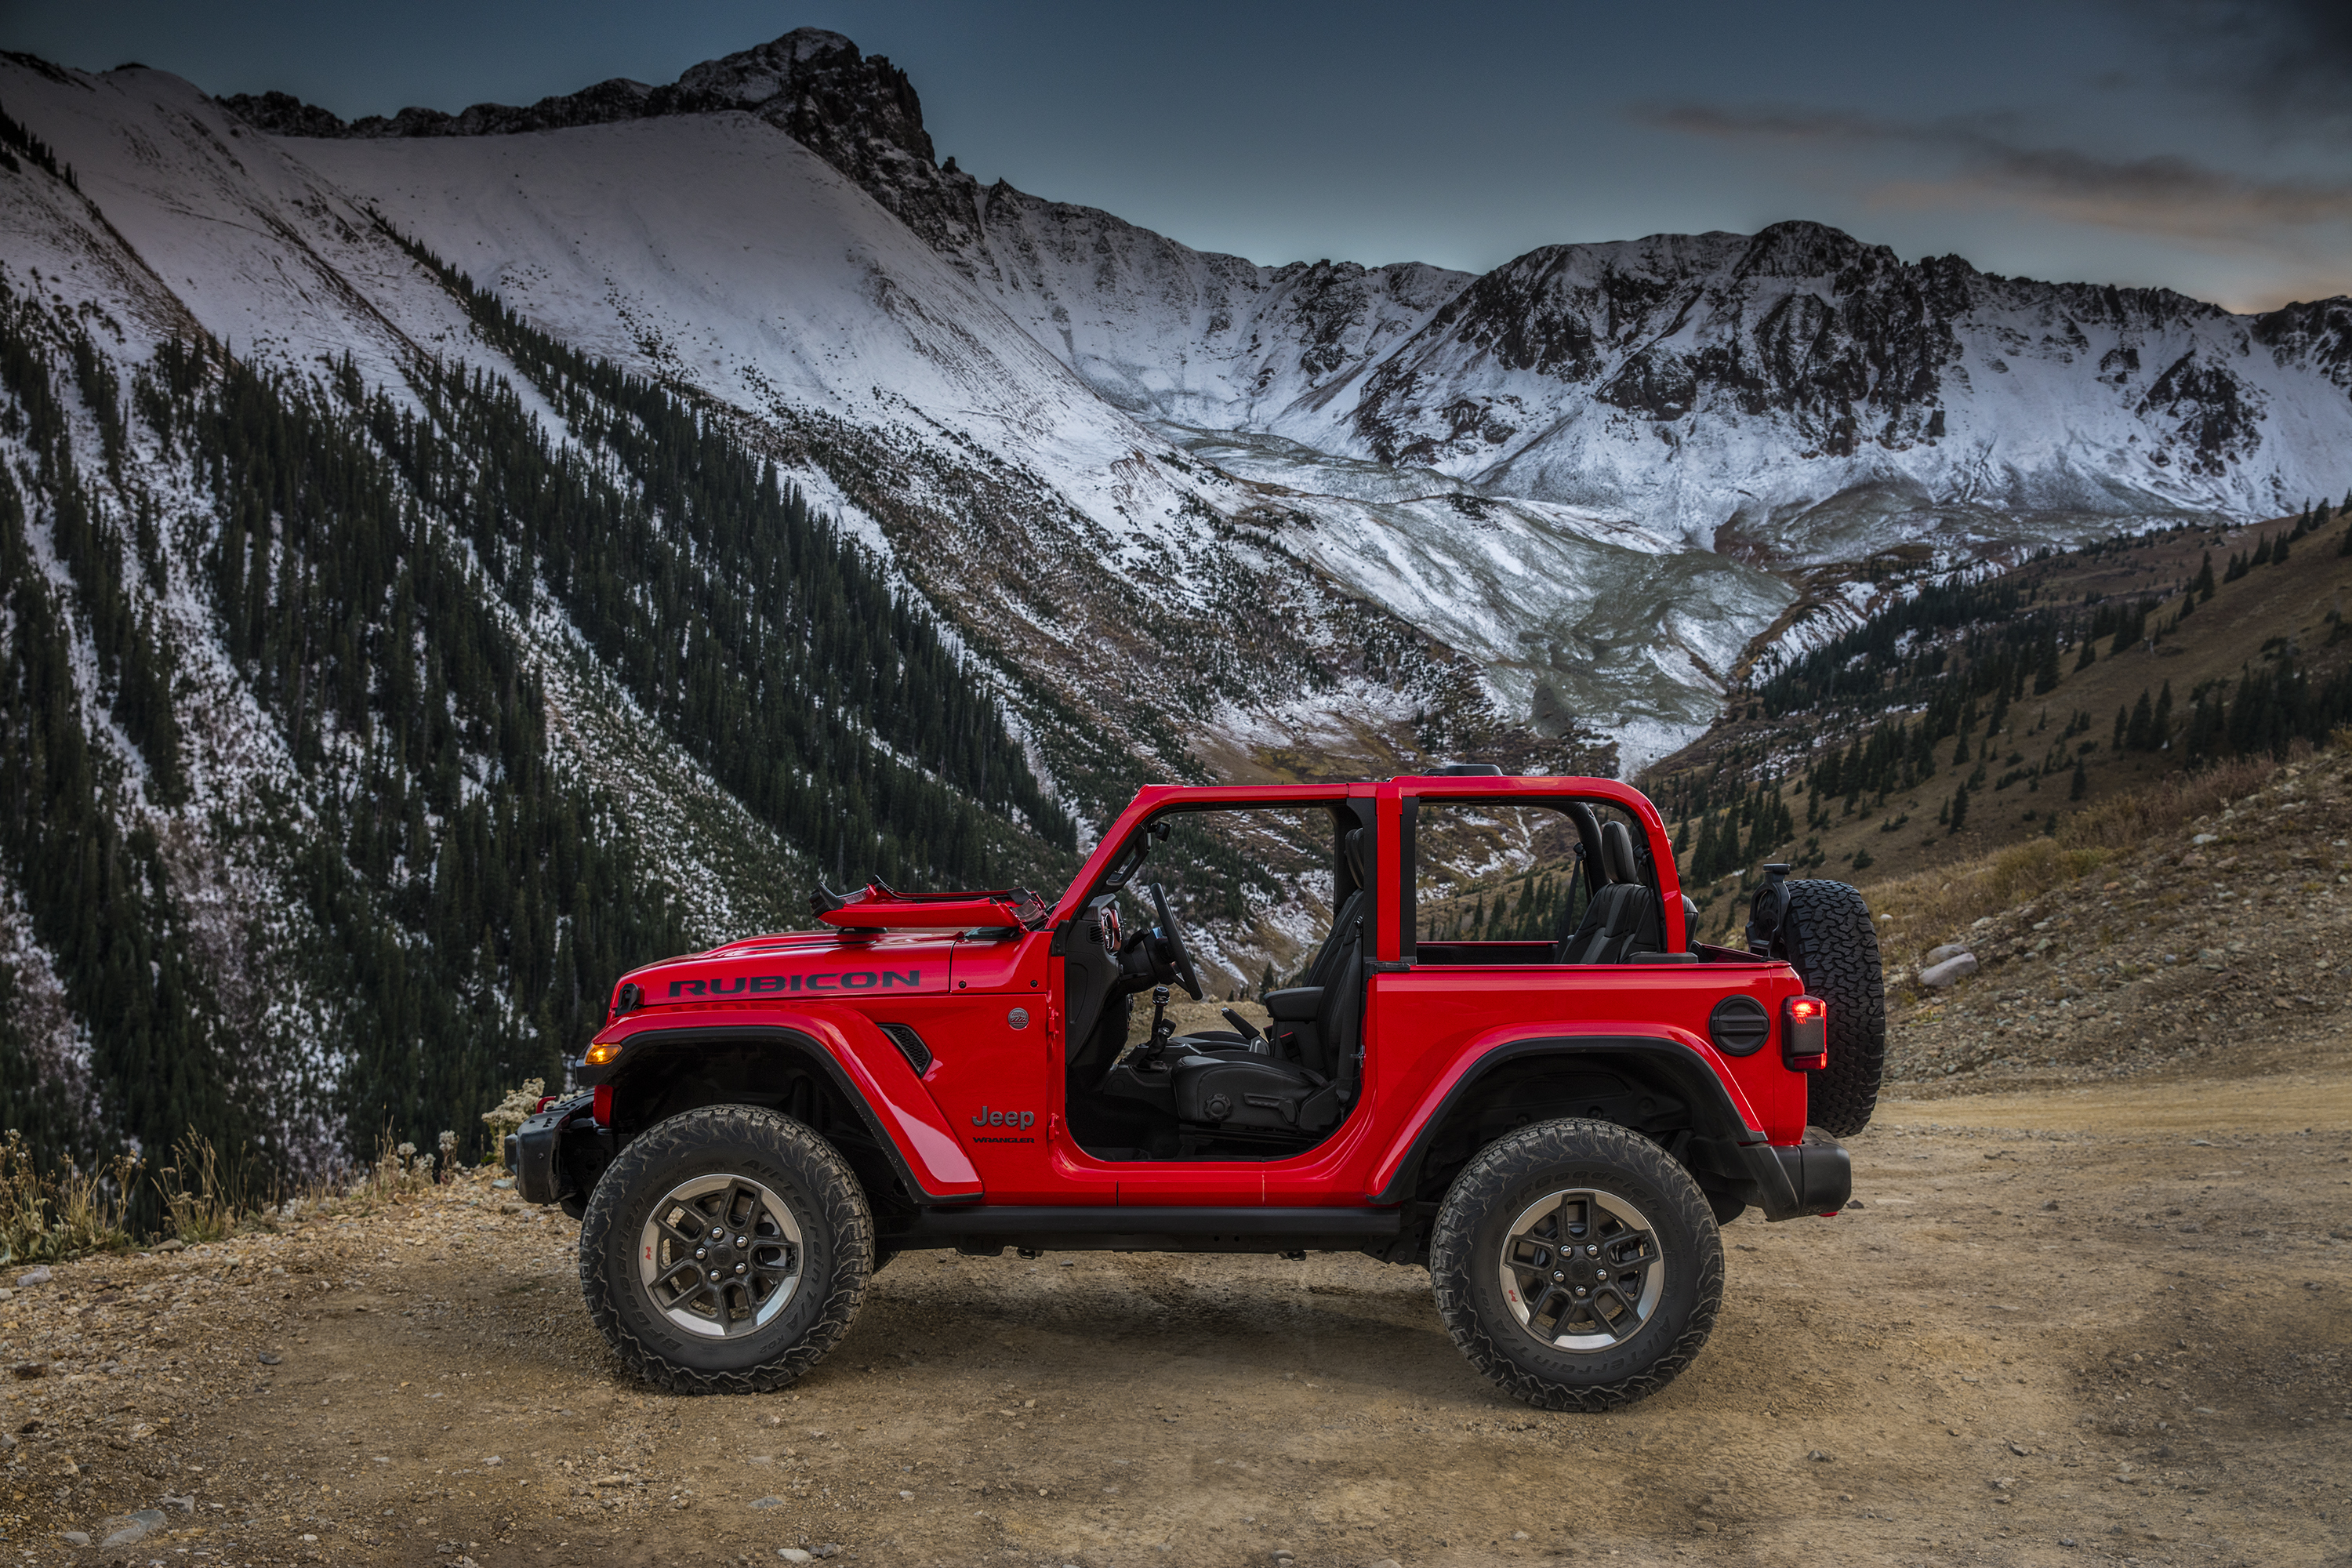 The All-new 2018 Jeep Wrangler Rubicon.